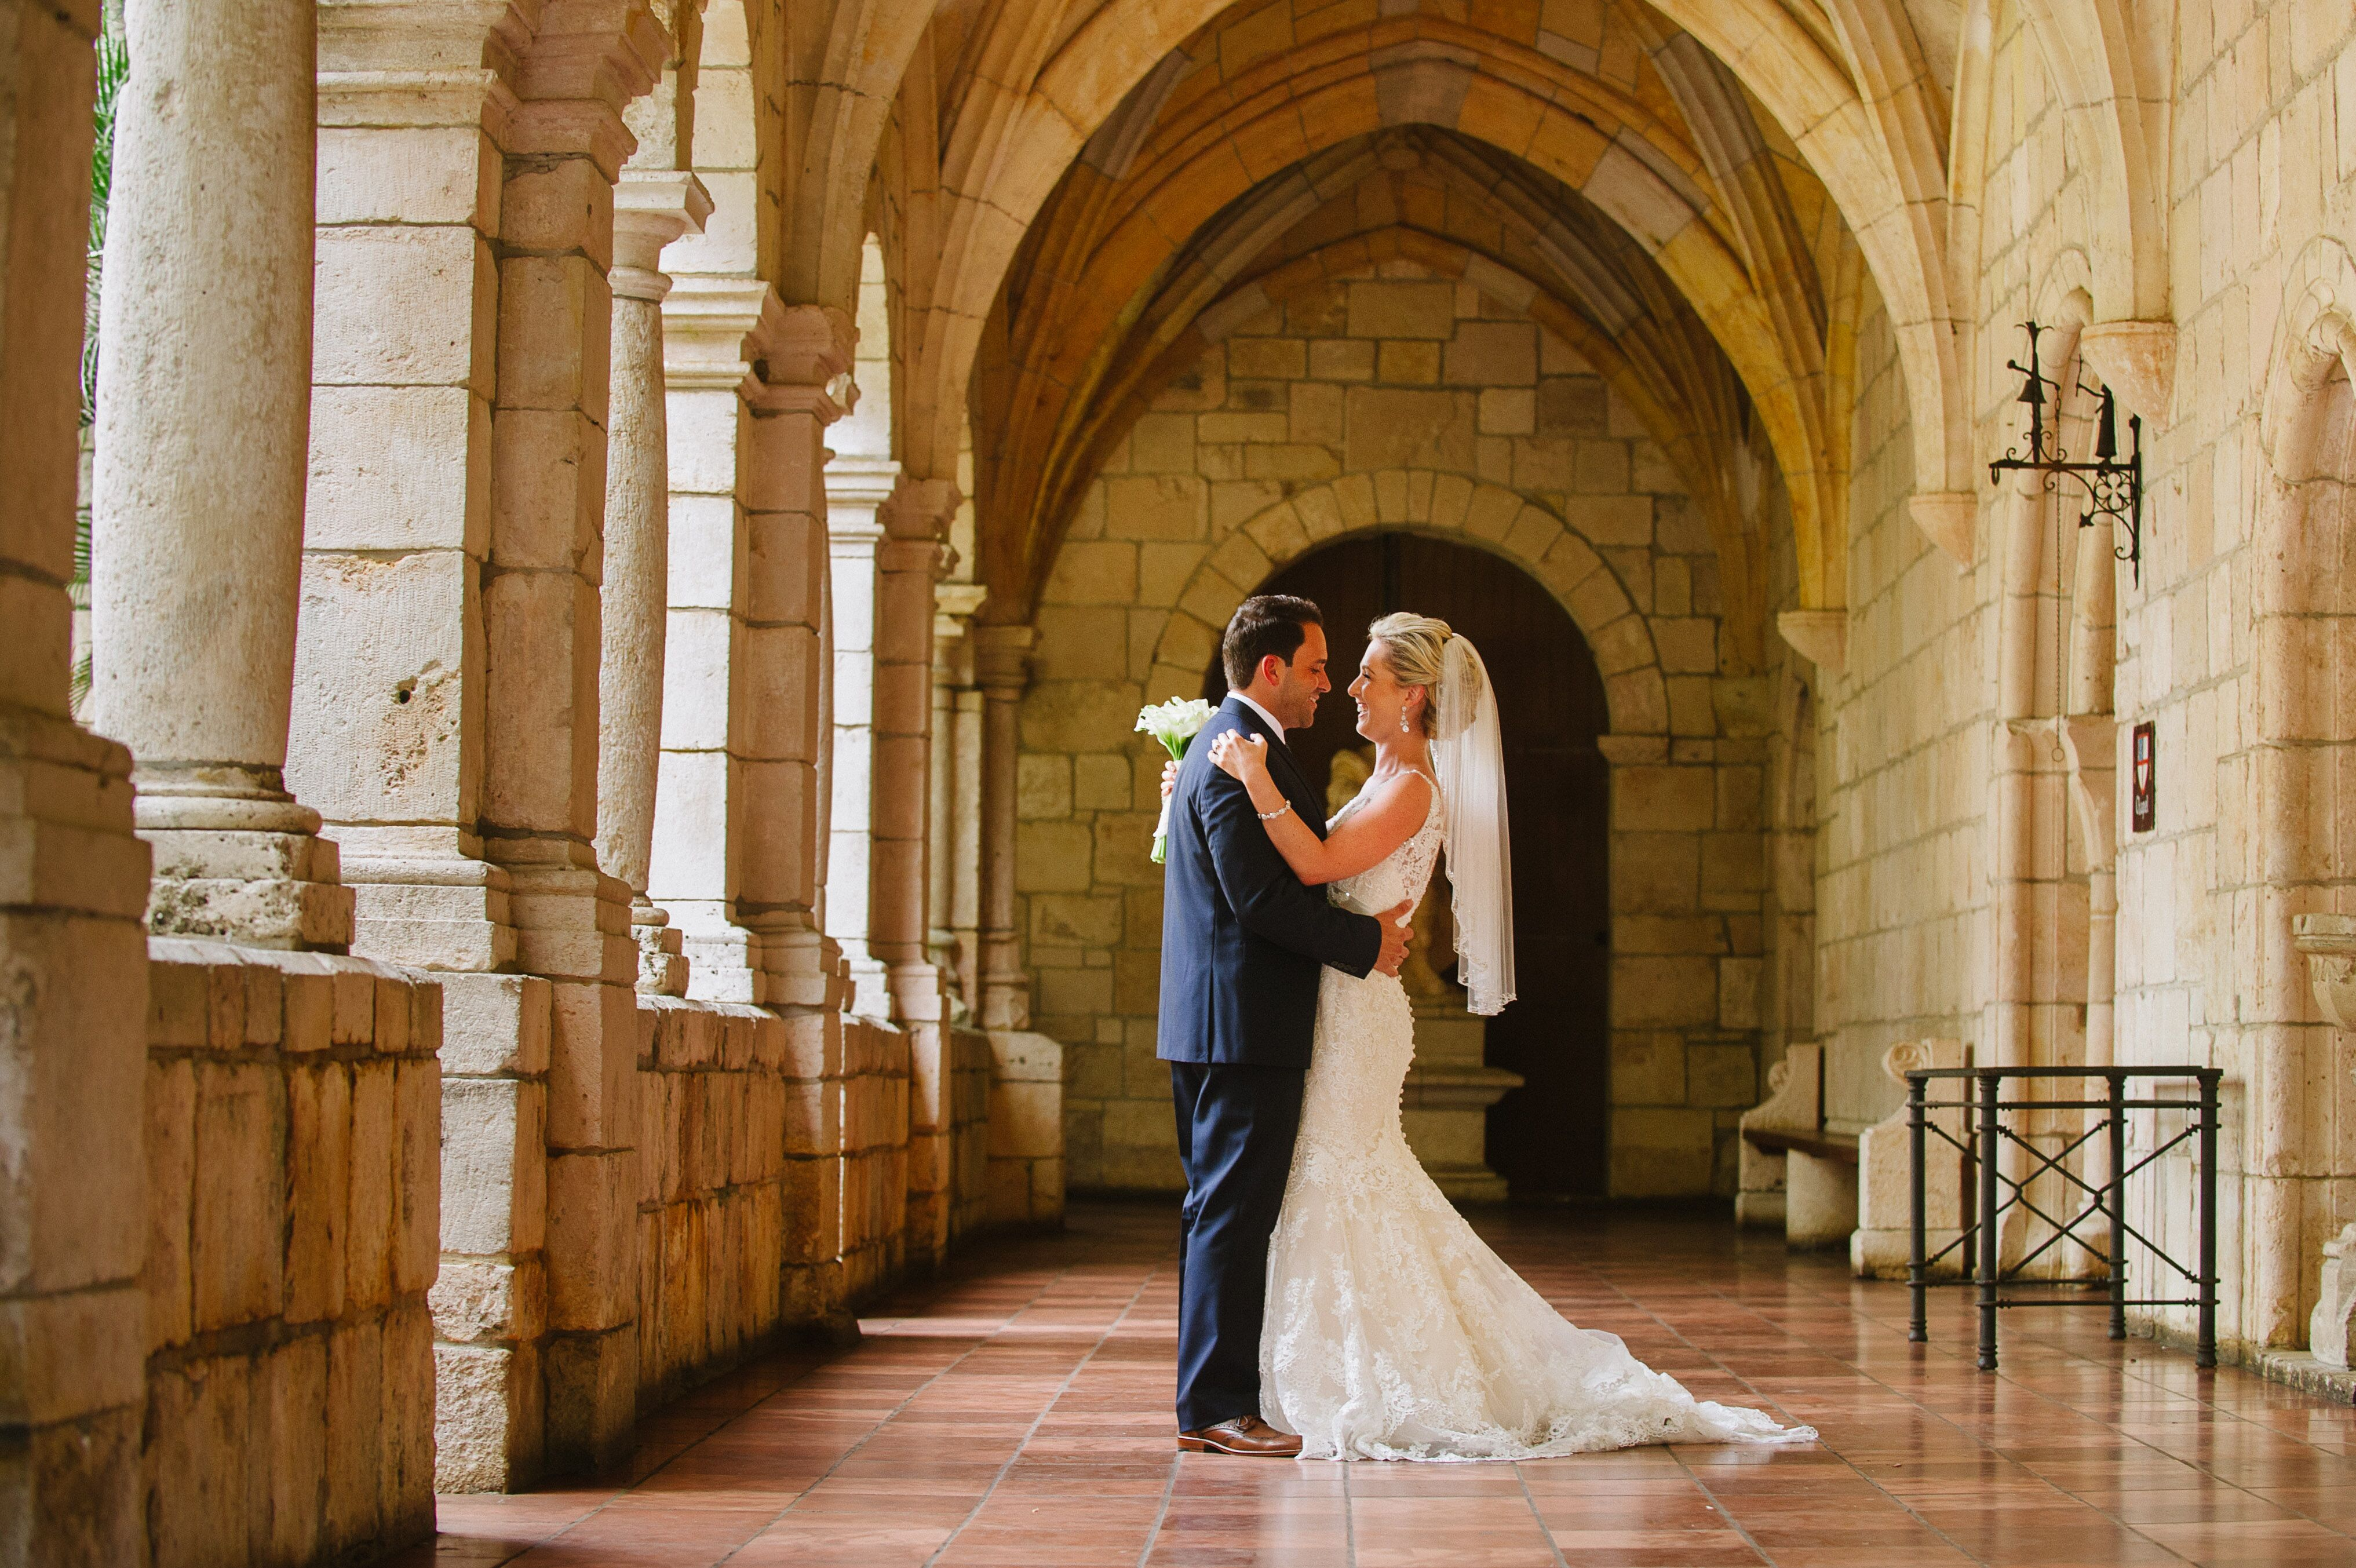 A Traditional Wedding At The Ancient Spanish Monastery In